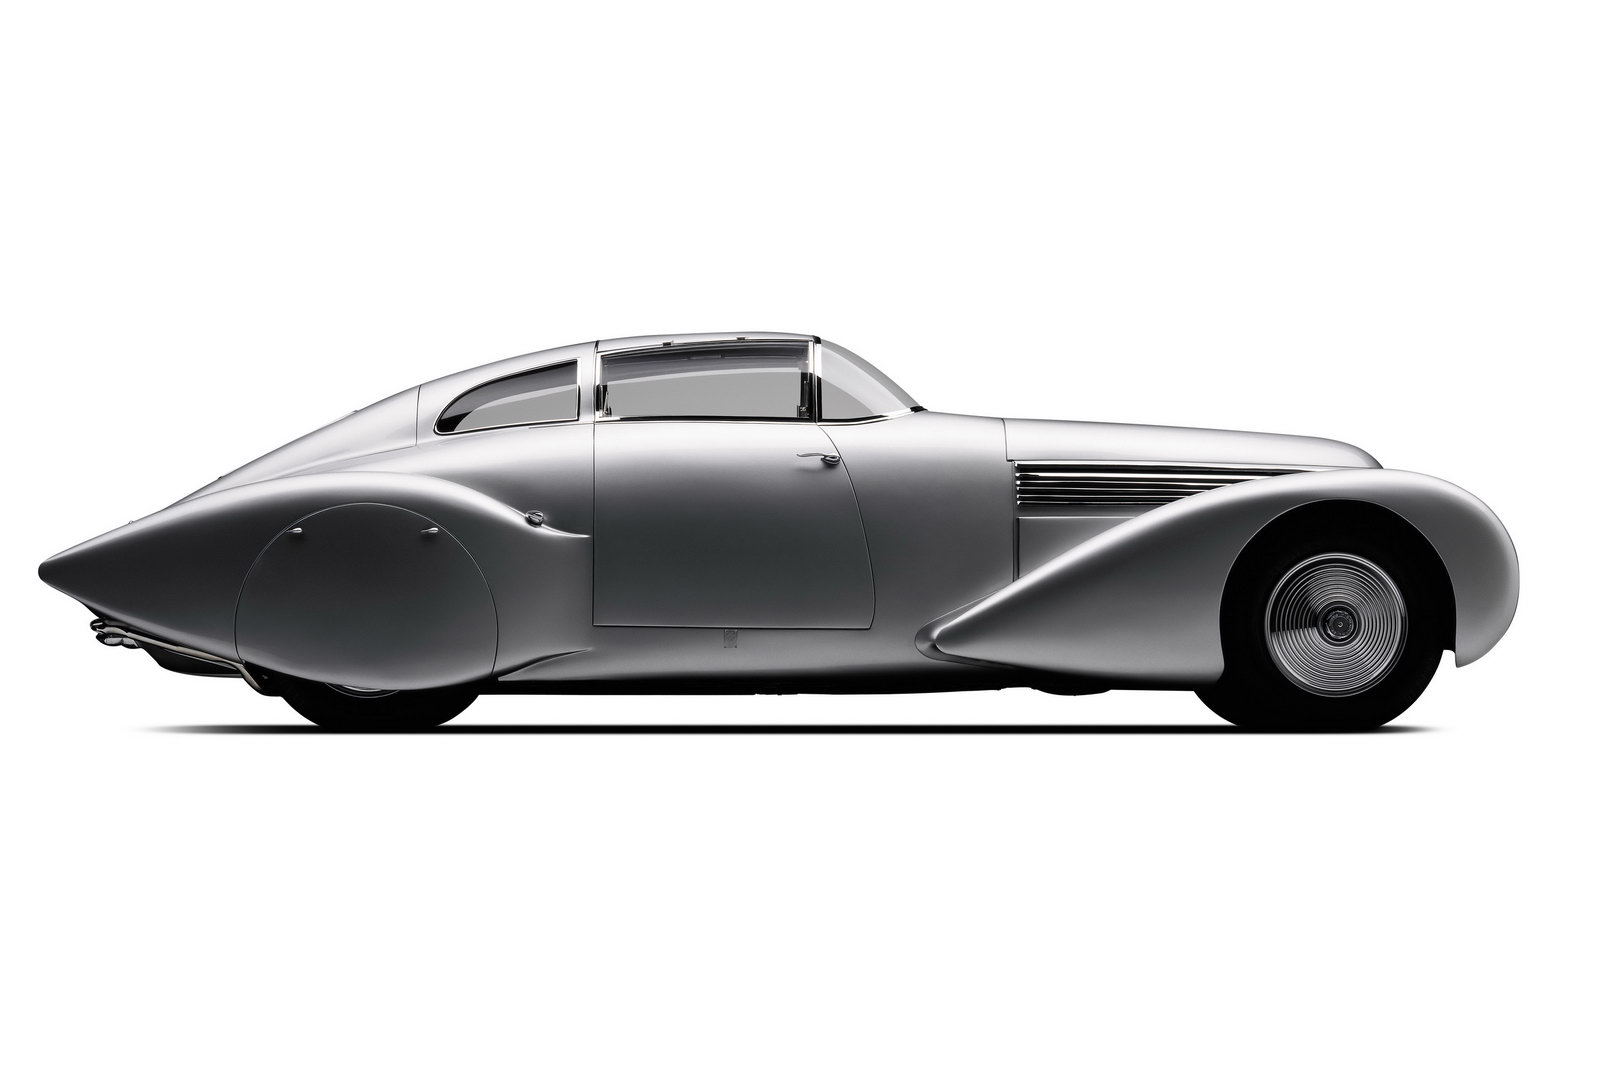 The Hispano-Suiza H-6C of 1932